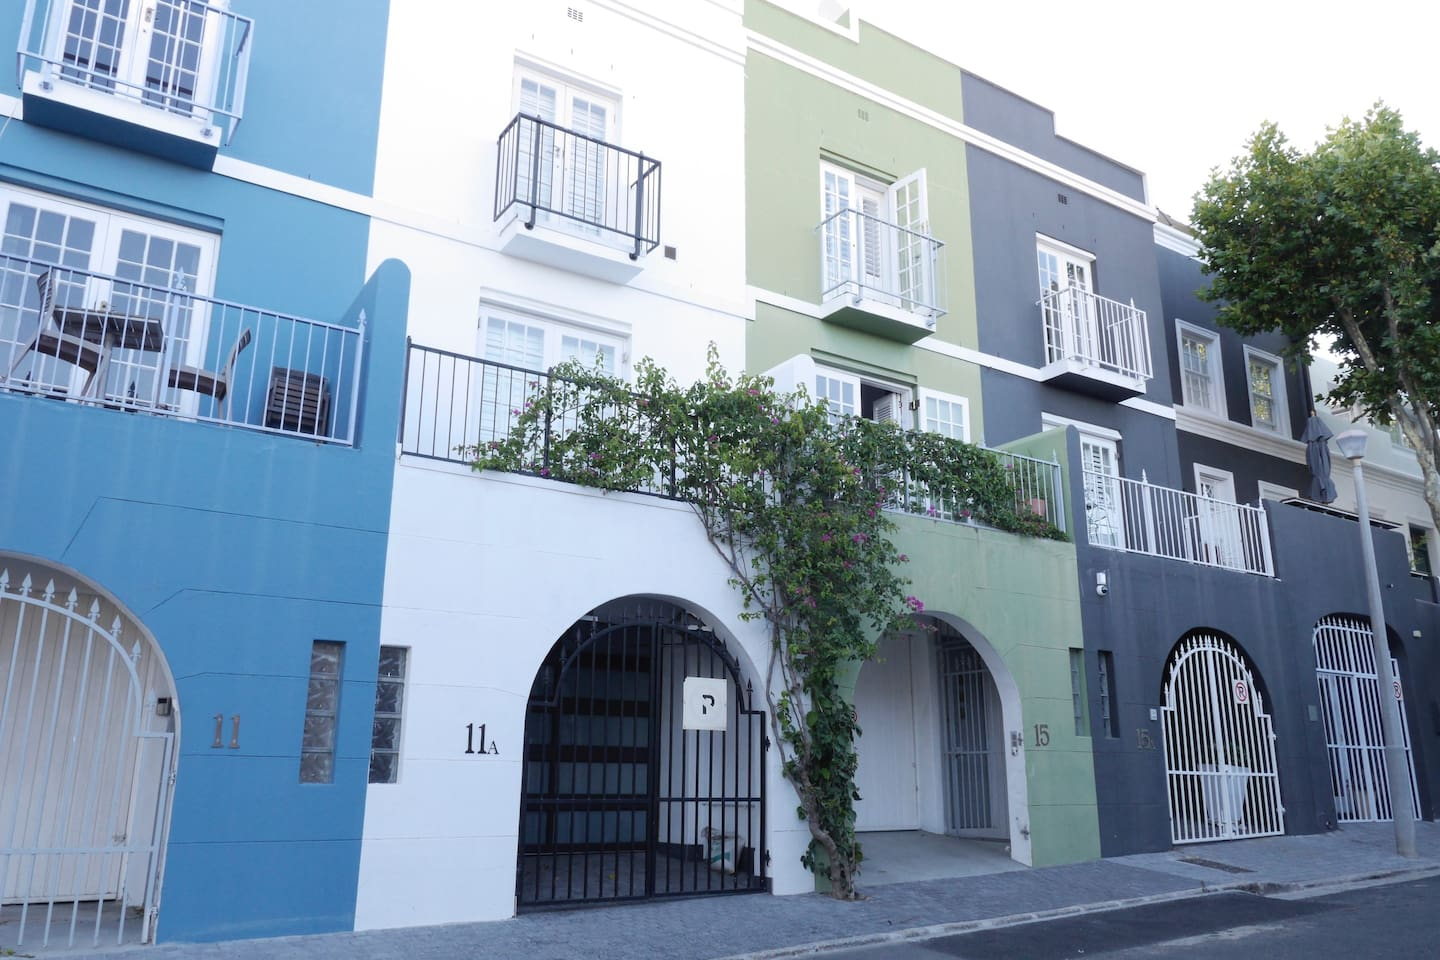 The house is located on trendy Loader Street - walking distance to the CBD, a number of restaurants and bars, and boutique shops